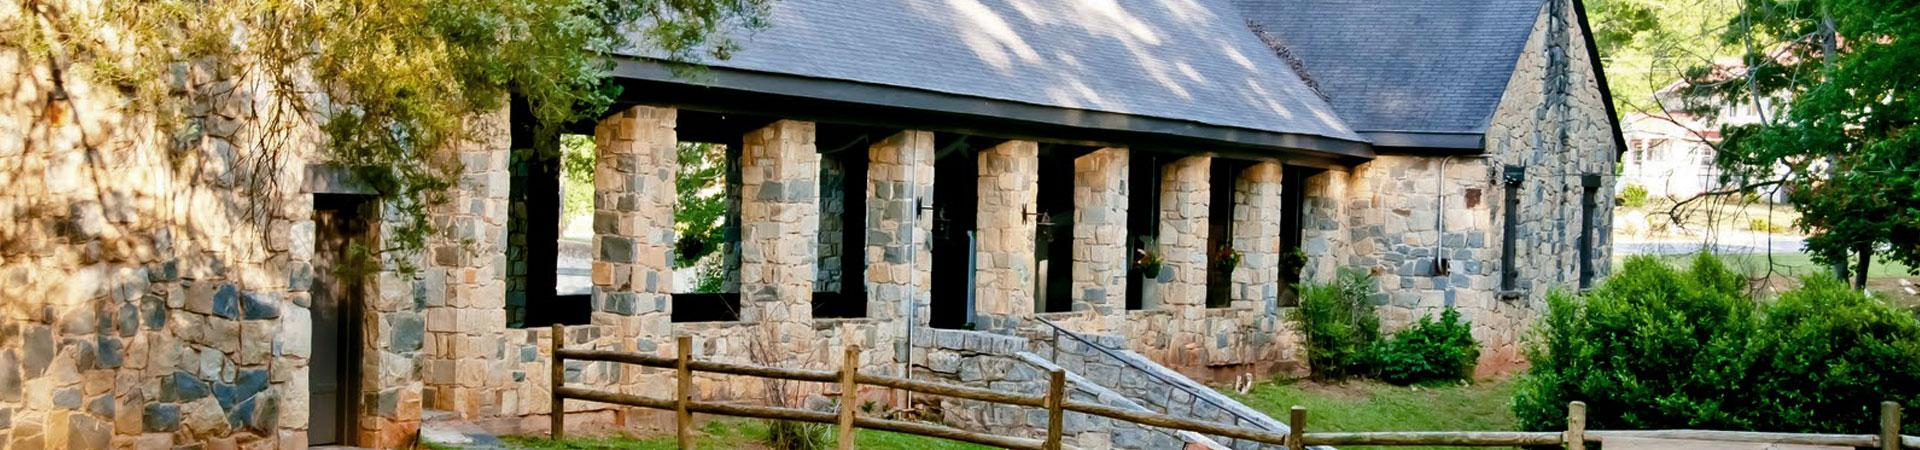 Indian Springs Stone Pavilion